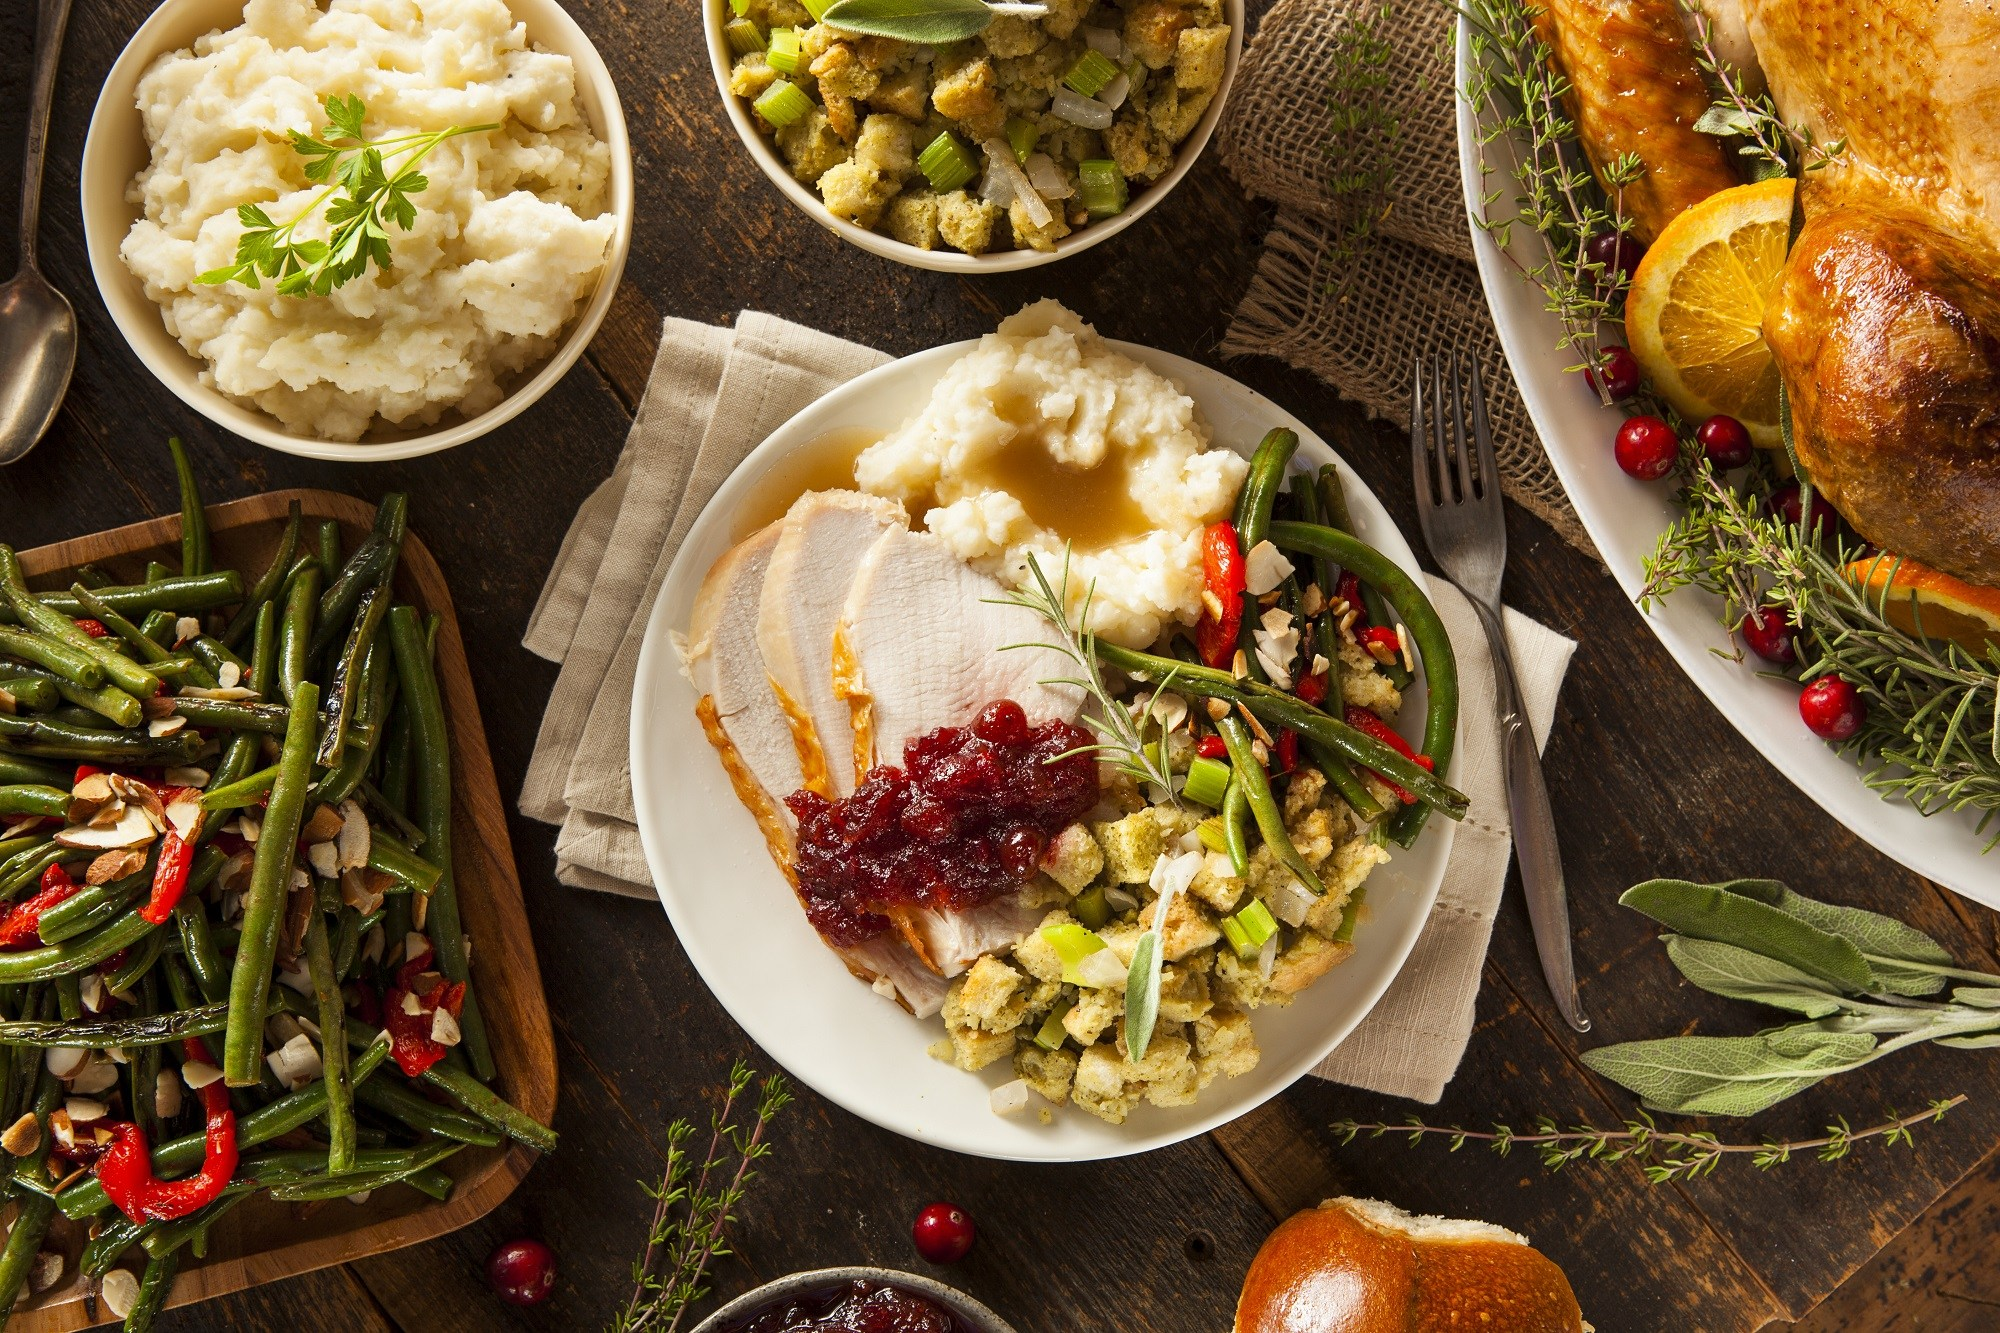 7 tips for making your Thanksgiving meal healthier